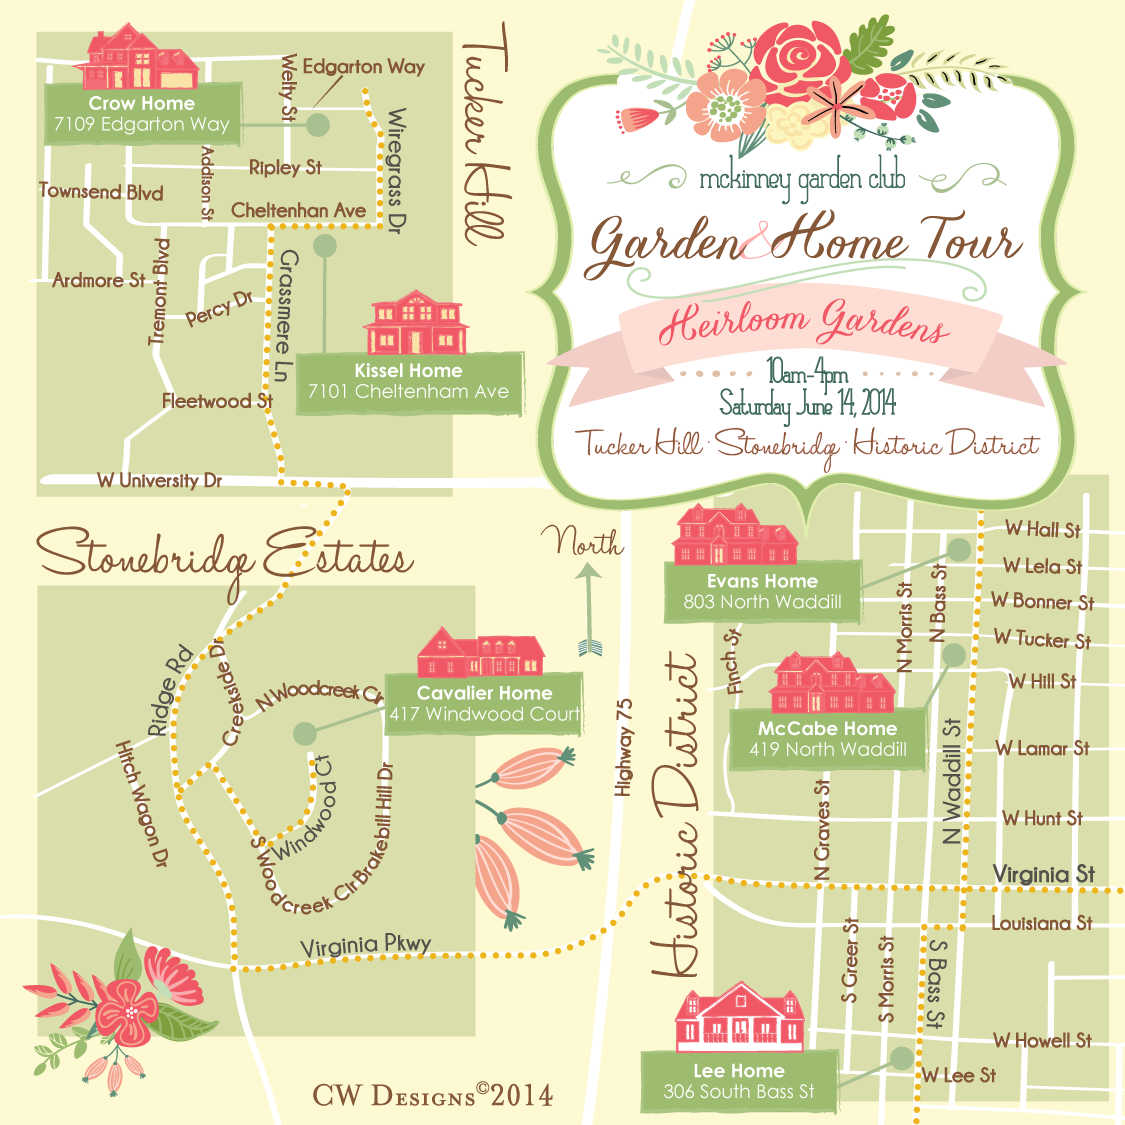 McKinney H&G Tour 2014_Map Front.png